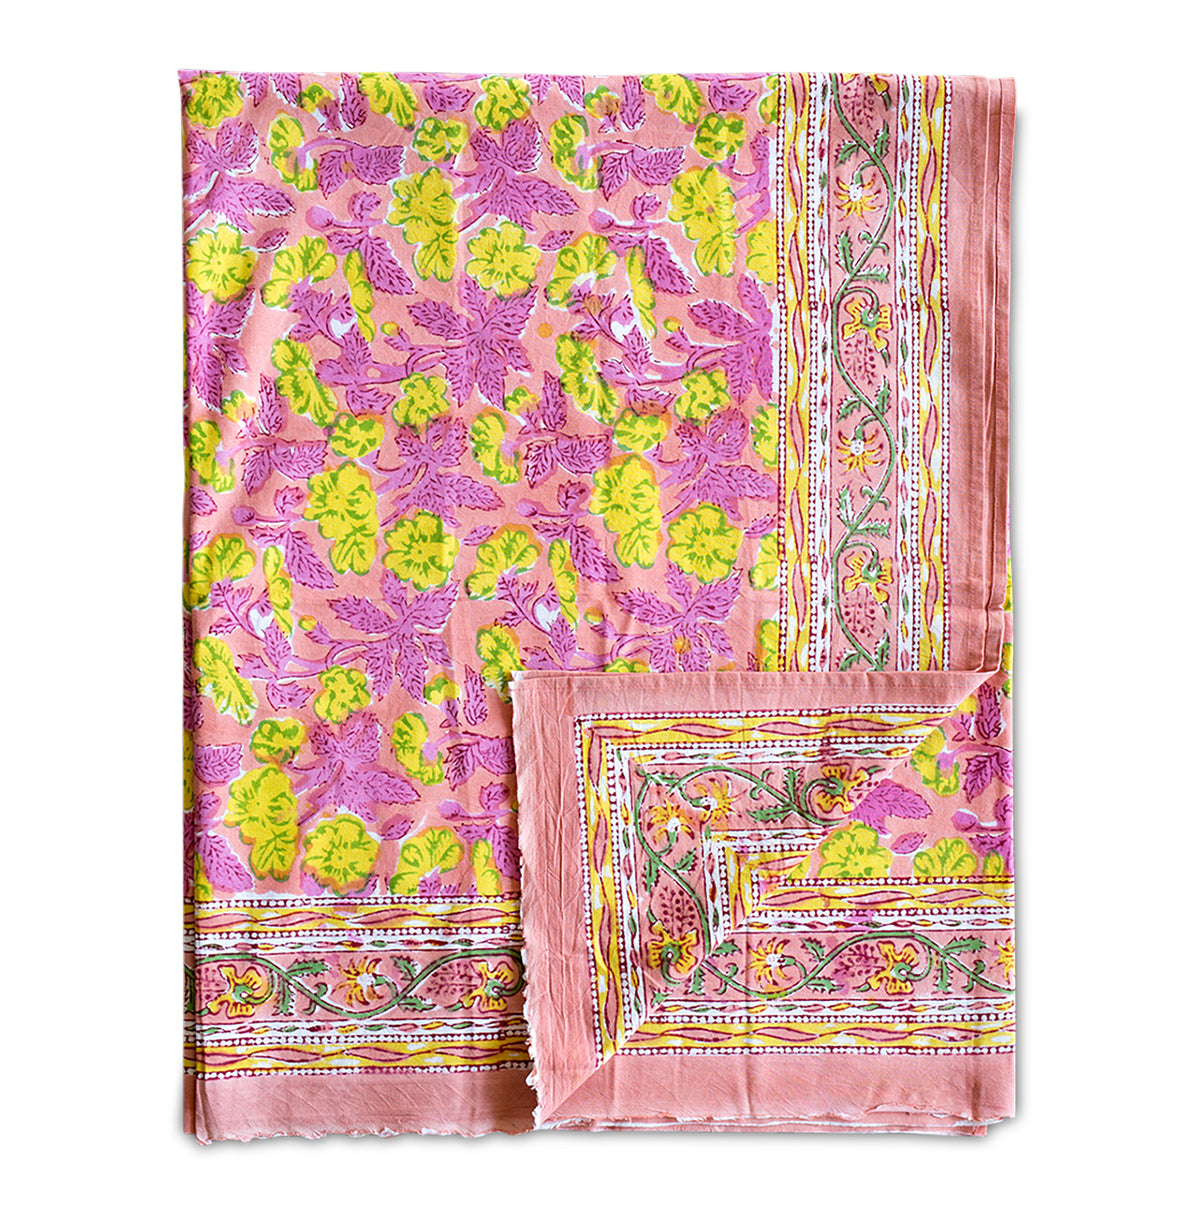 Furbish Studio - San Juan Island Tablecloth in pinks and yellows and greens